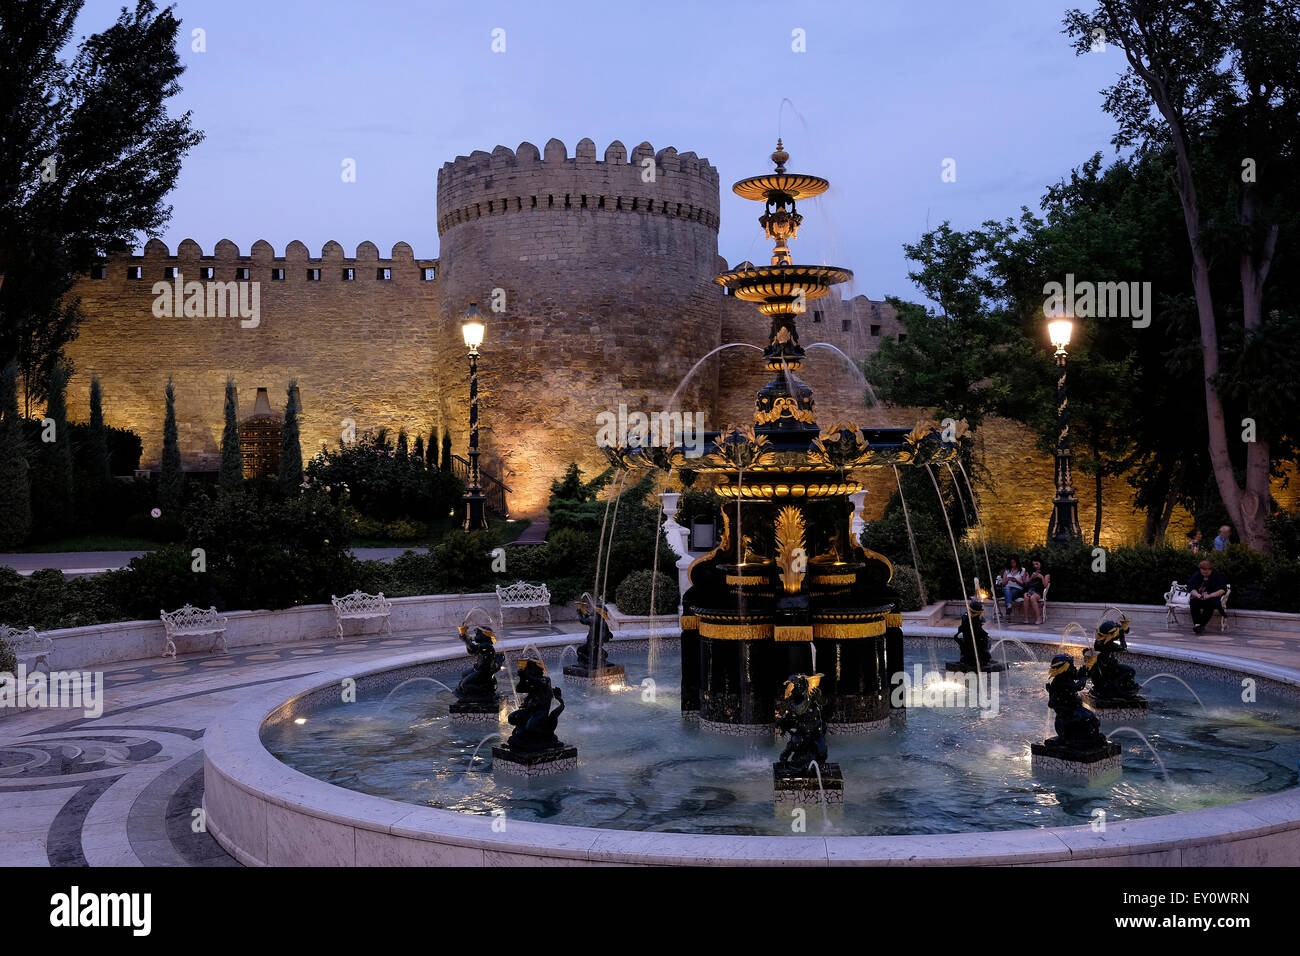 Old city walls illuminated at night in Icheri Sheher which is the historical core of Baku listed in UNESCO World - Stock Image